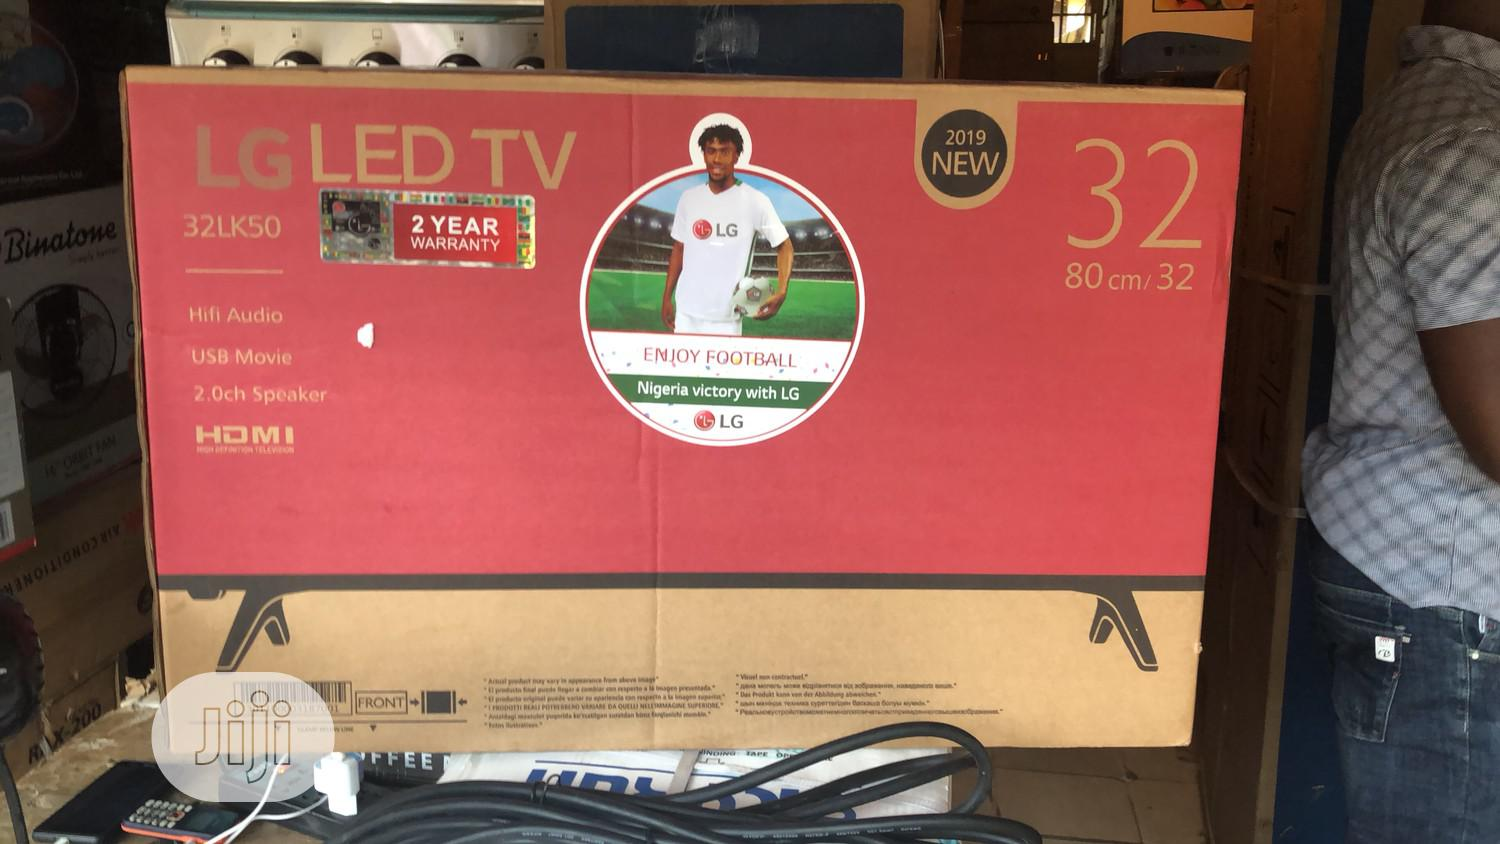 Archive: LG LED TV 32inch